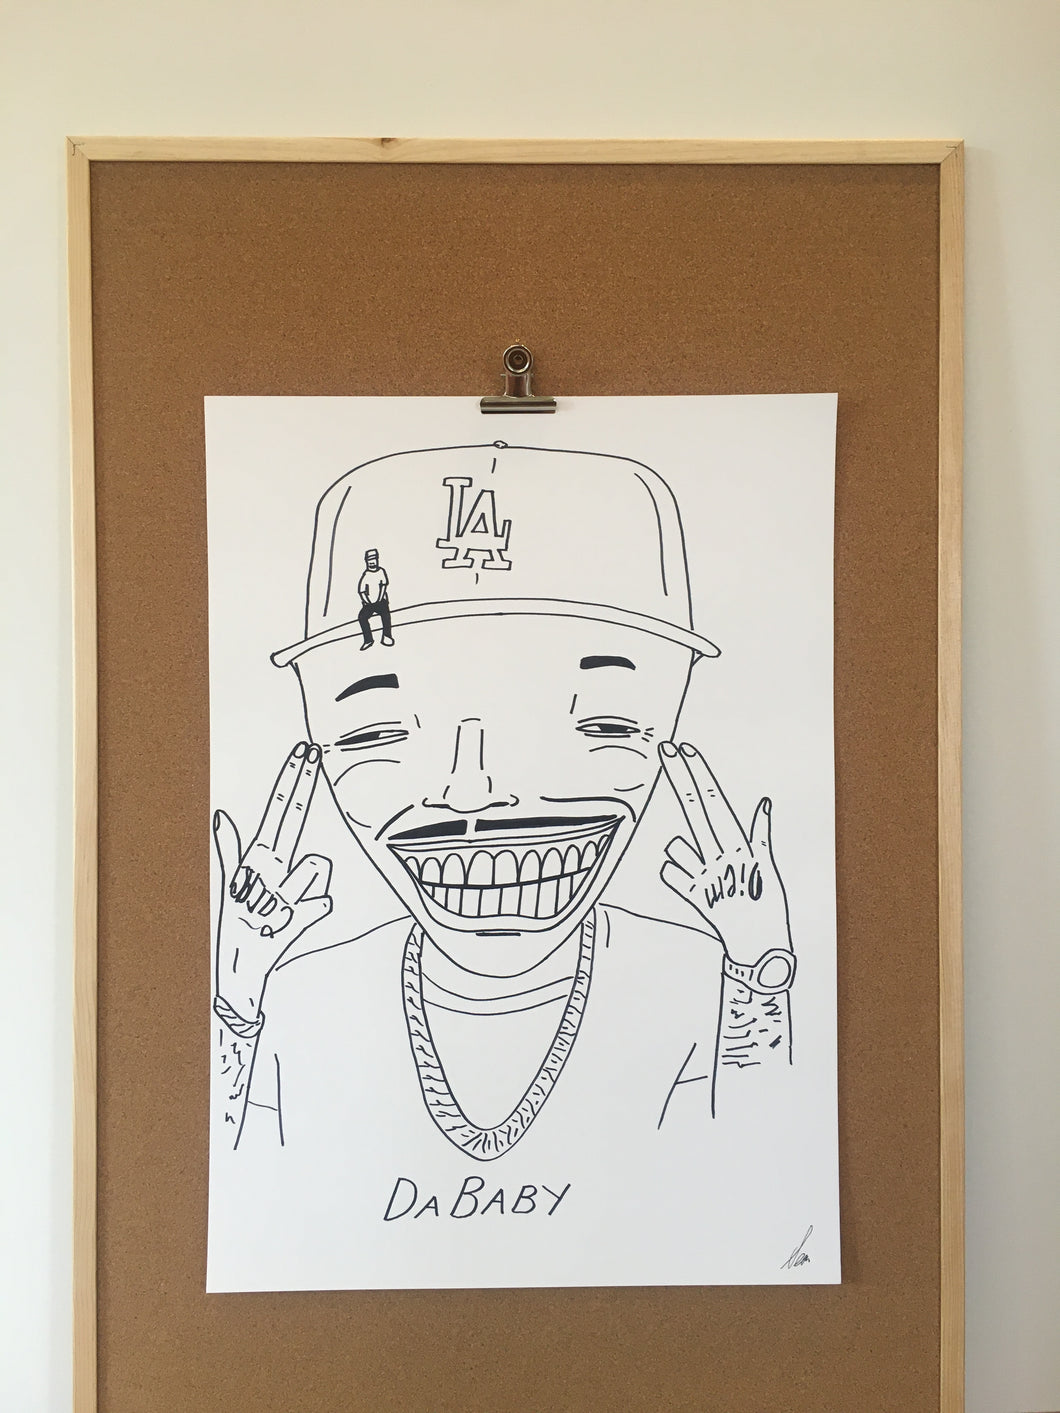 Badly Drawn DaBaby - Original Drawing - A2.